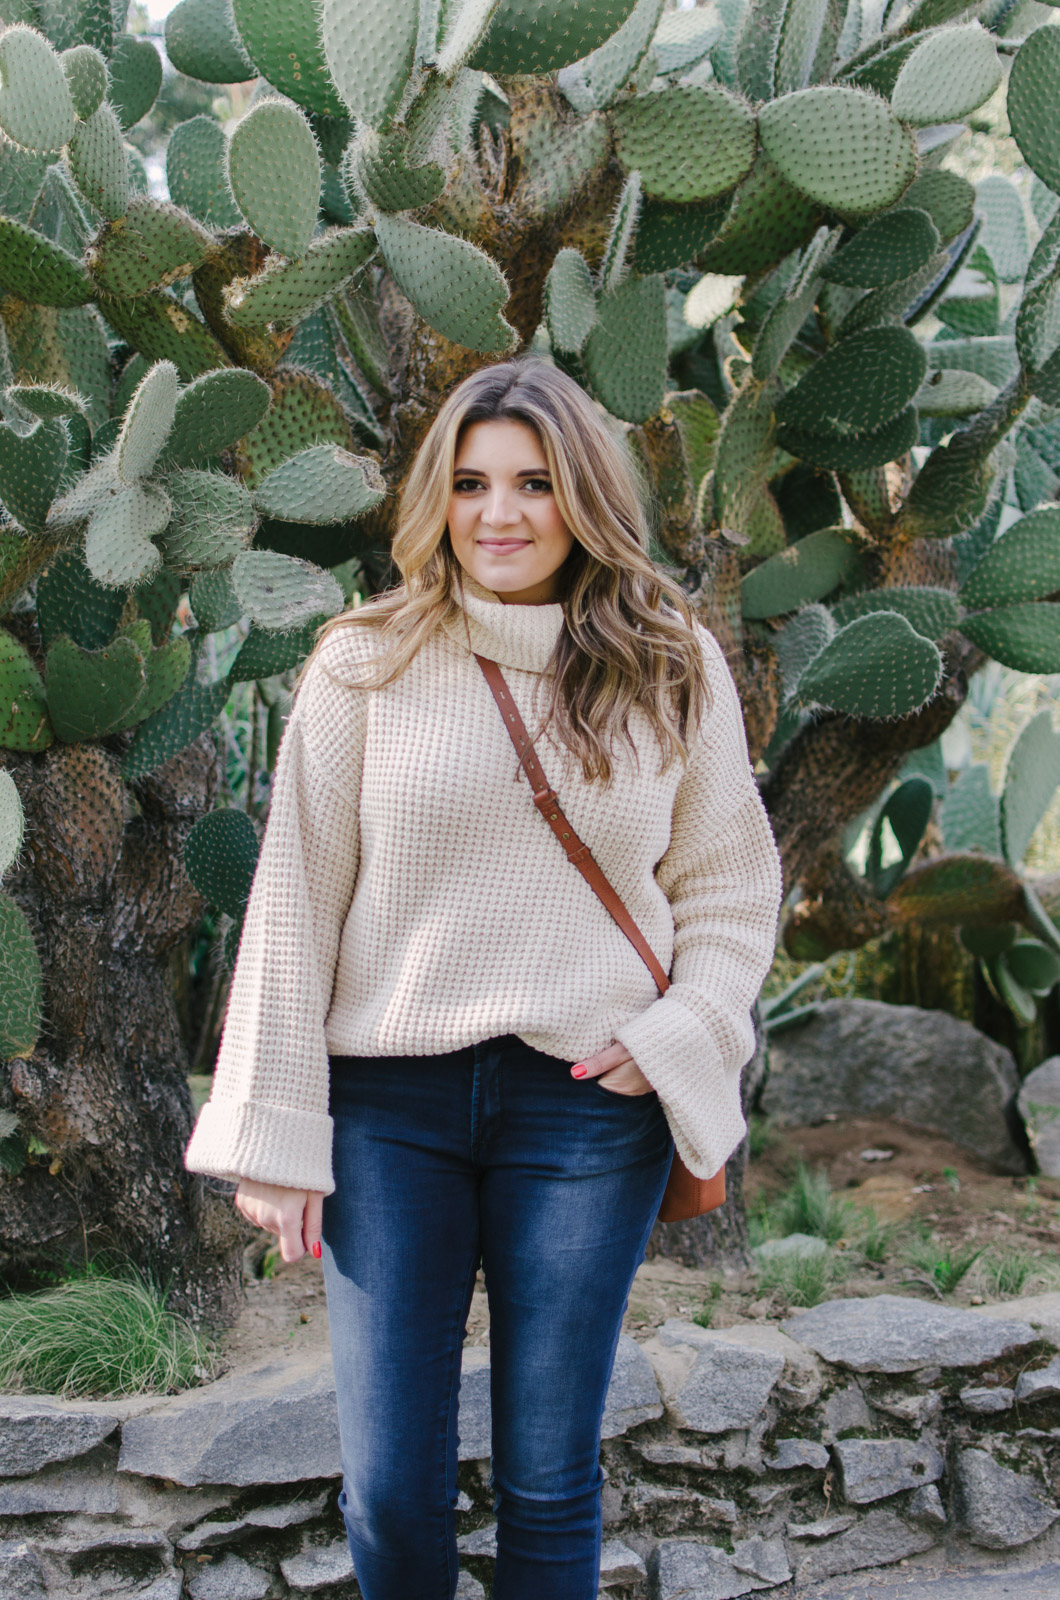 how wear chunky sweater - chunky turtleneck sweater outfit | shop this look or see more cute winter outfits at bylaurenm.com!